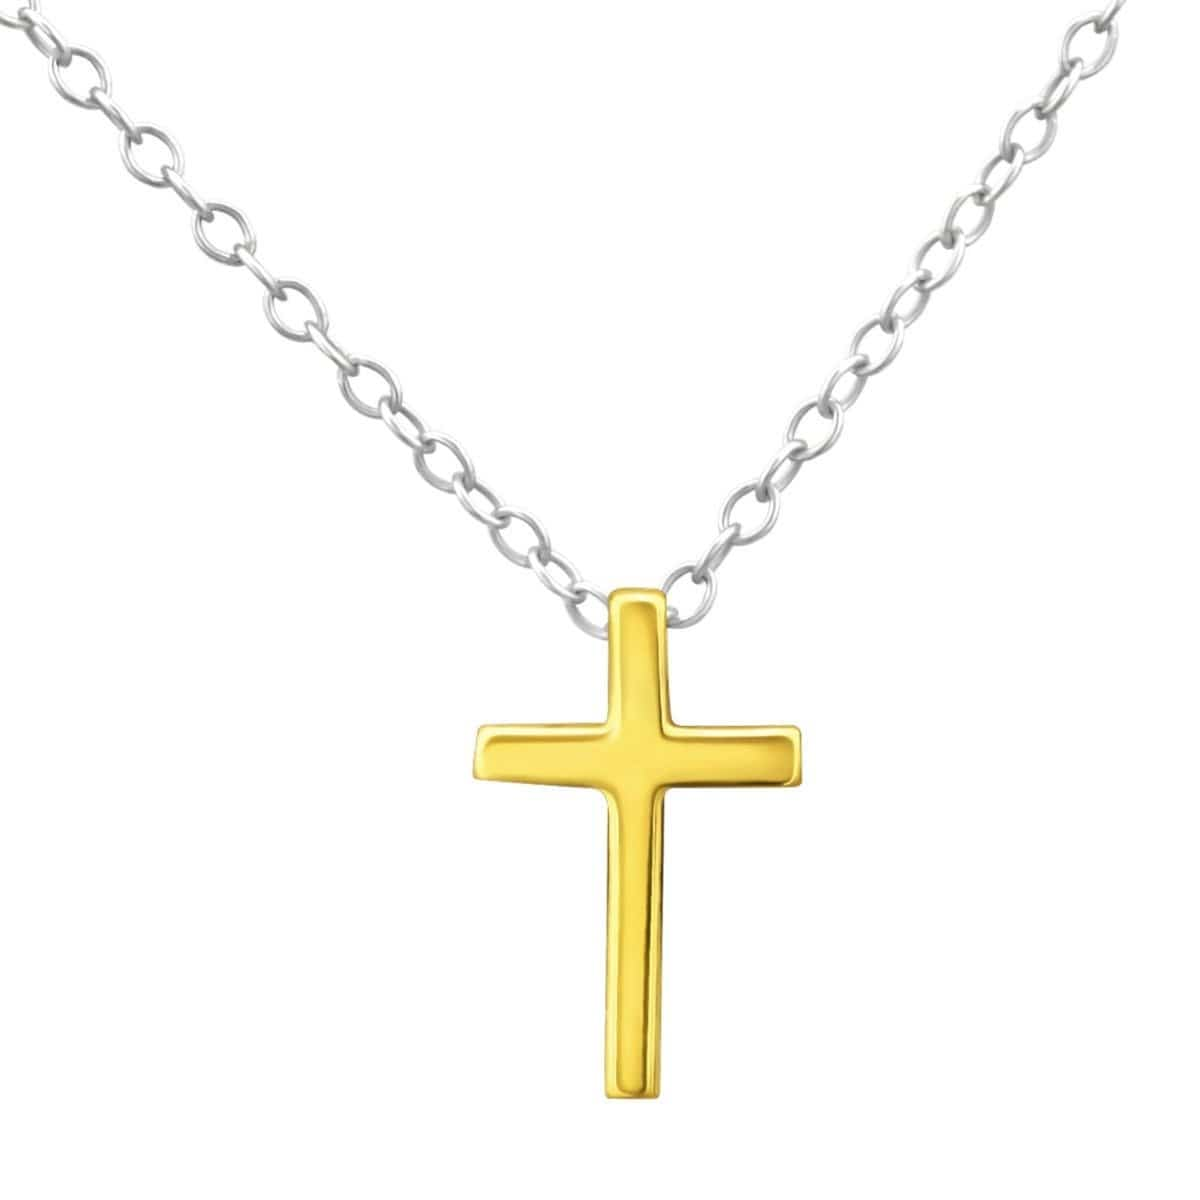 Gold Plated 925 Sterling Silver Cross Necklace